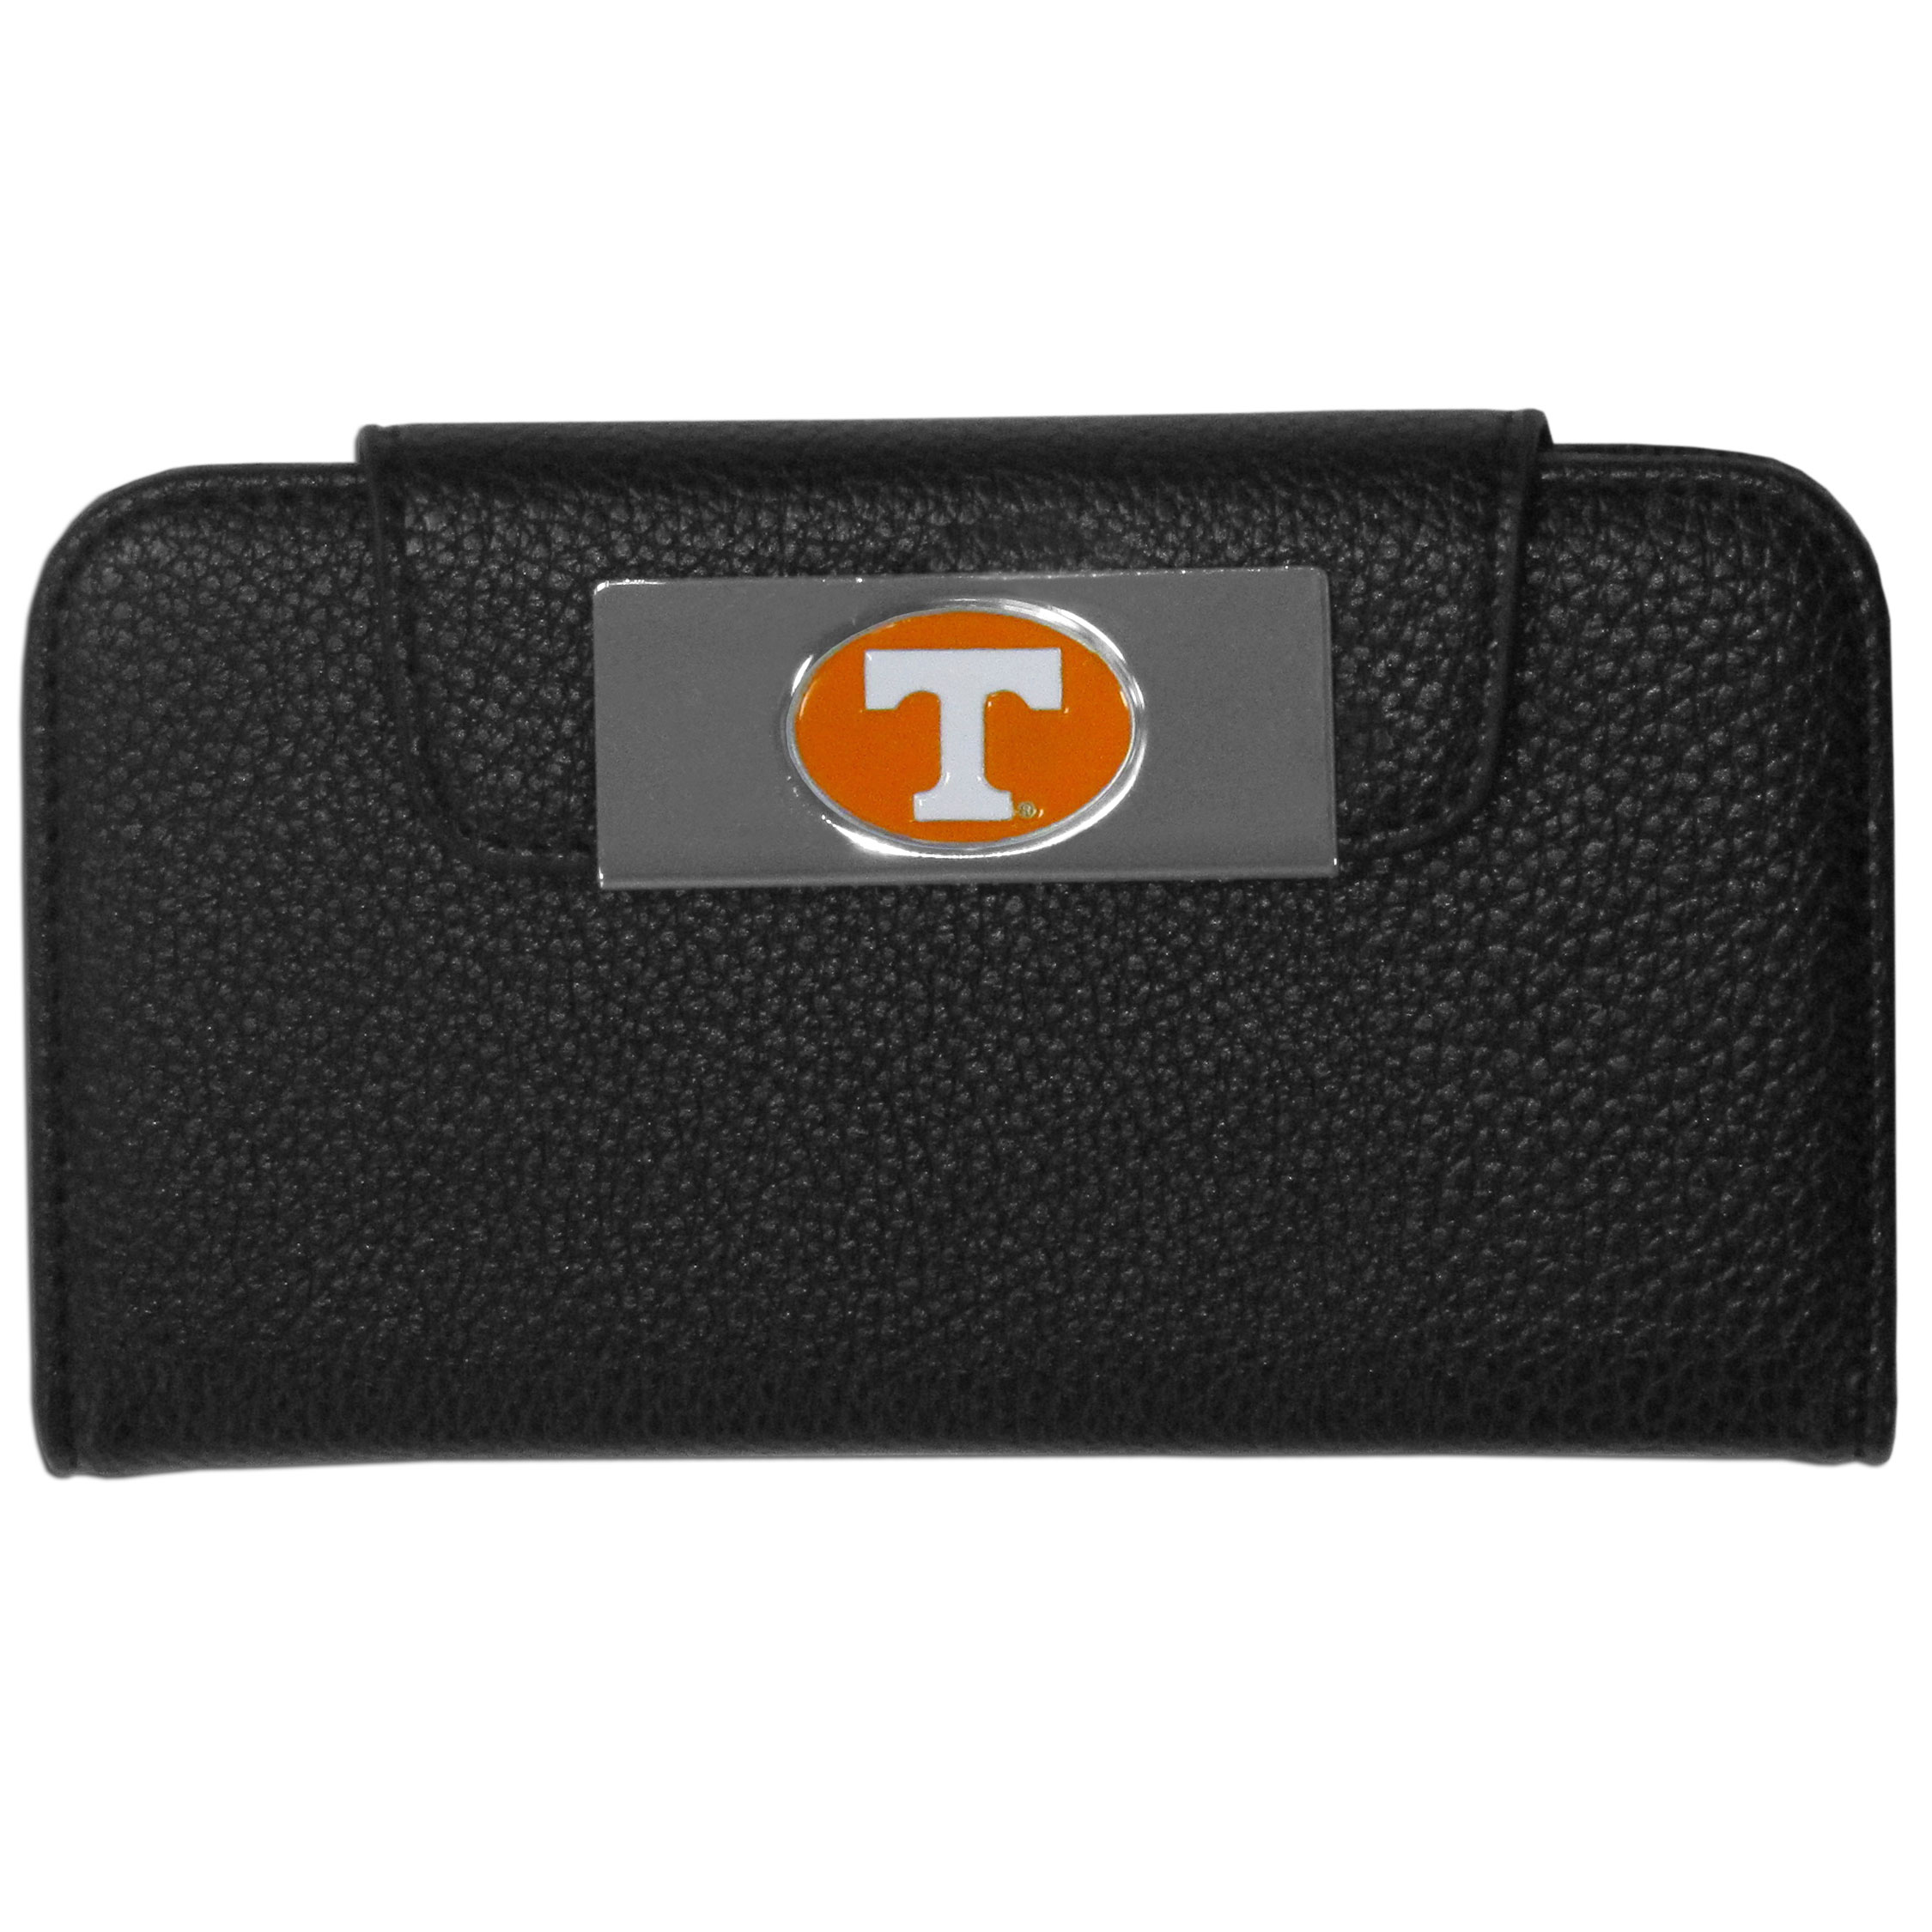 Tennessee Volunteers iPhone 5/5S Wallet Case - This new & wildly popular case is ideal for those who like to travel light! The stylish case has an inner hard shell that securely holds your phone while allowing complete access to the phone's functionality. The flip cover has slots for credit cards, business cards and identification. The magnetic flip cover has a metal Tennessee Volunteers emblem on a high polish chrome backing. Fits the iPhone 5/5S